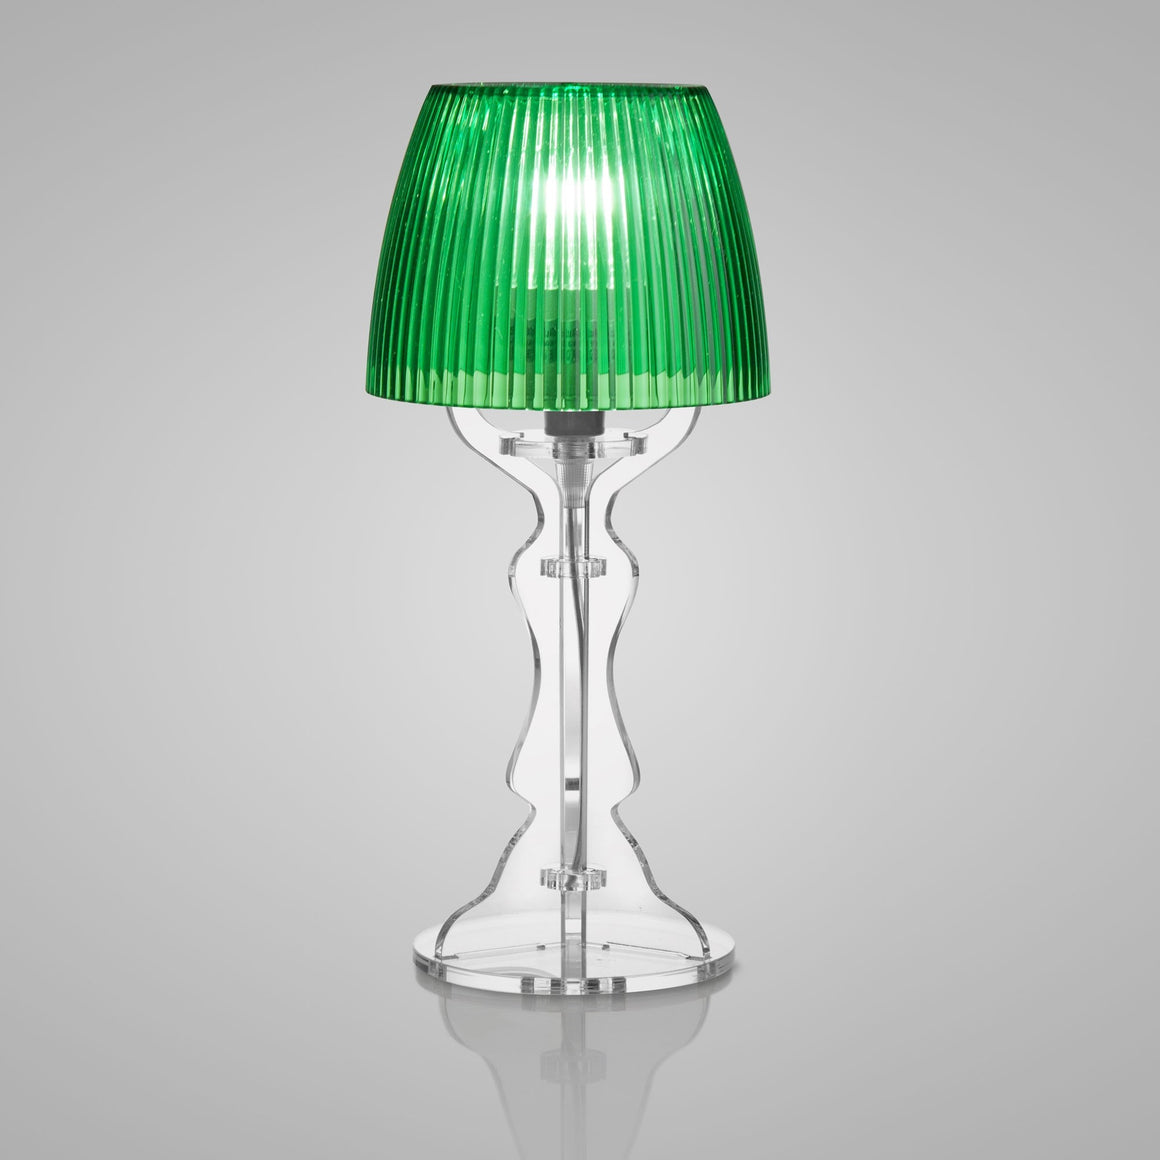 LADY SMALL TABLE LIGHT